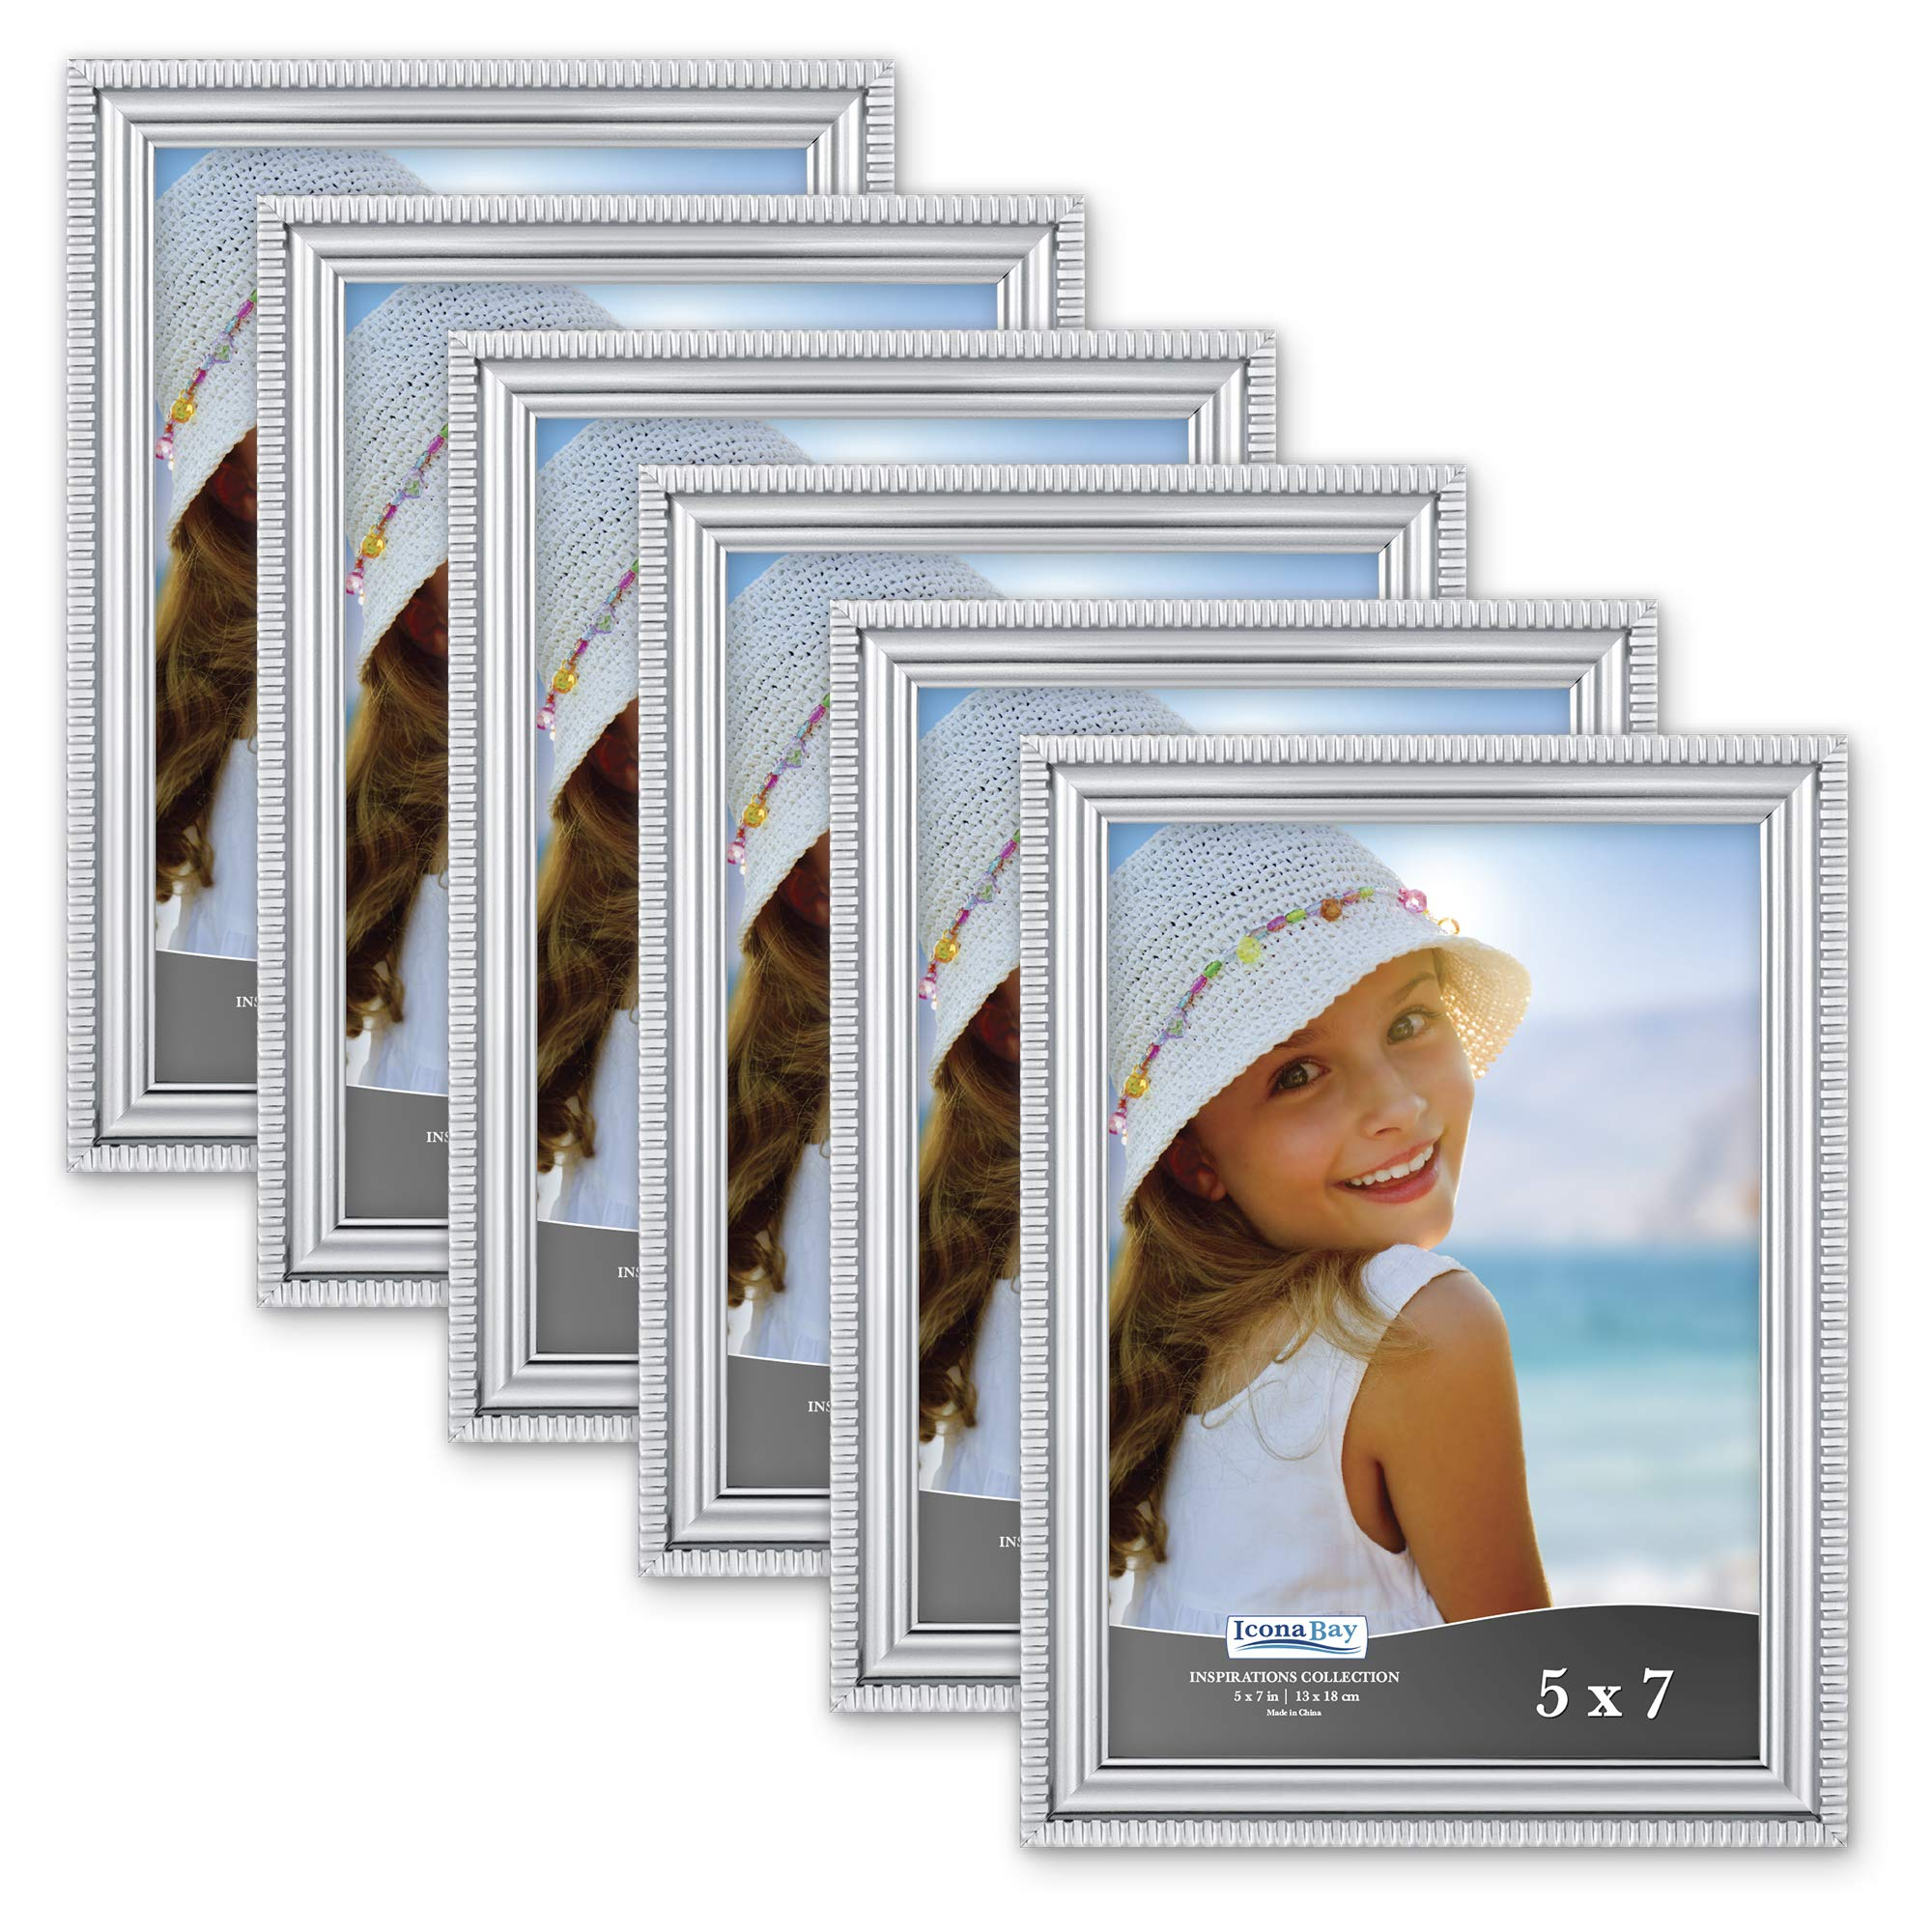 Icona Bay 5x7 Picture Frames (6 Pack, Silver) Picture Frame Set, Wall Mount or Table Top, Set of 6 Inspirations Collection by Icona Bay